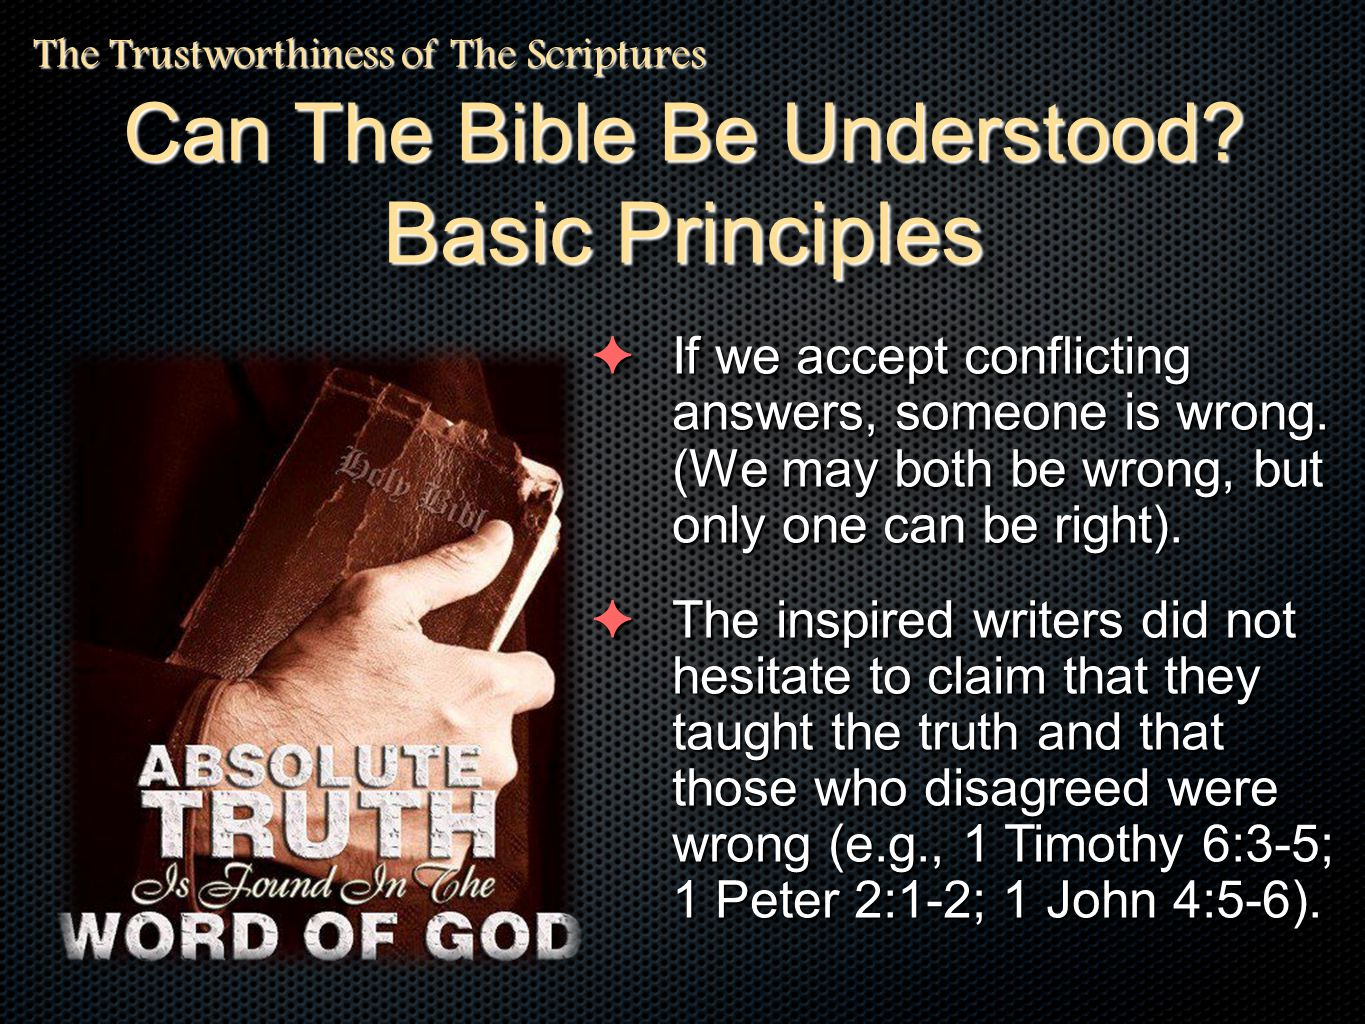 ✦ If one is teaching what the Bible teaches, then it's not just a matter of opinion or interpretation.